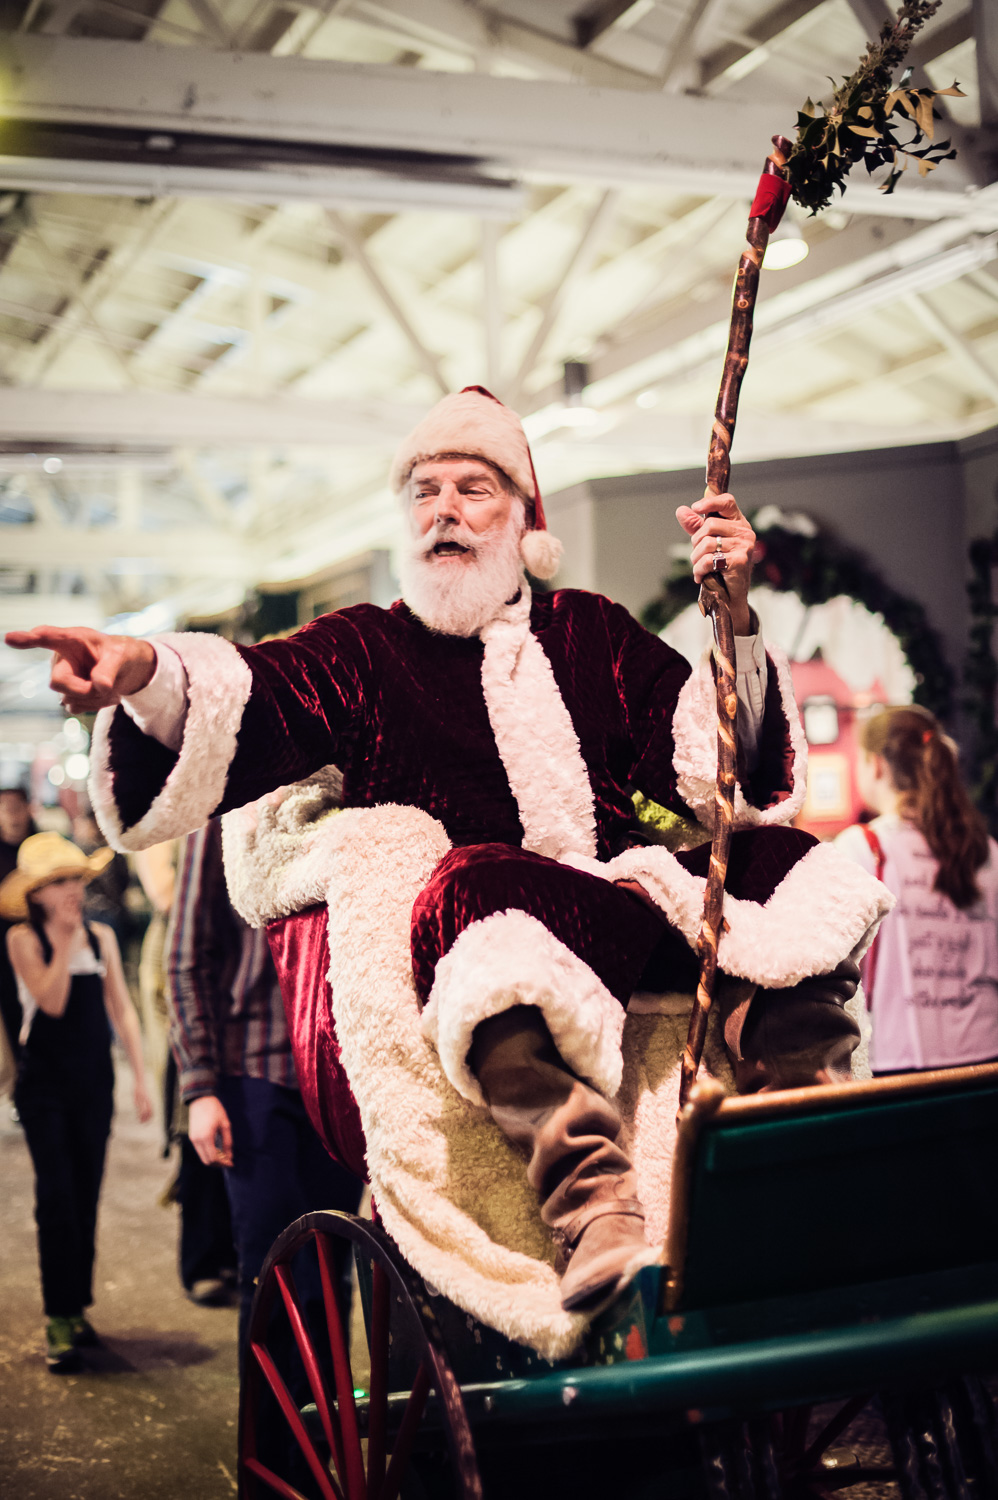 Father Christmas at The Great Christmas Dickens Fair // Ashley Petersen Photo